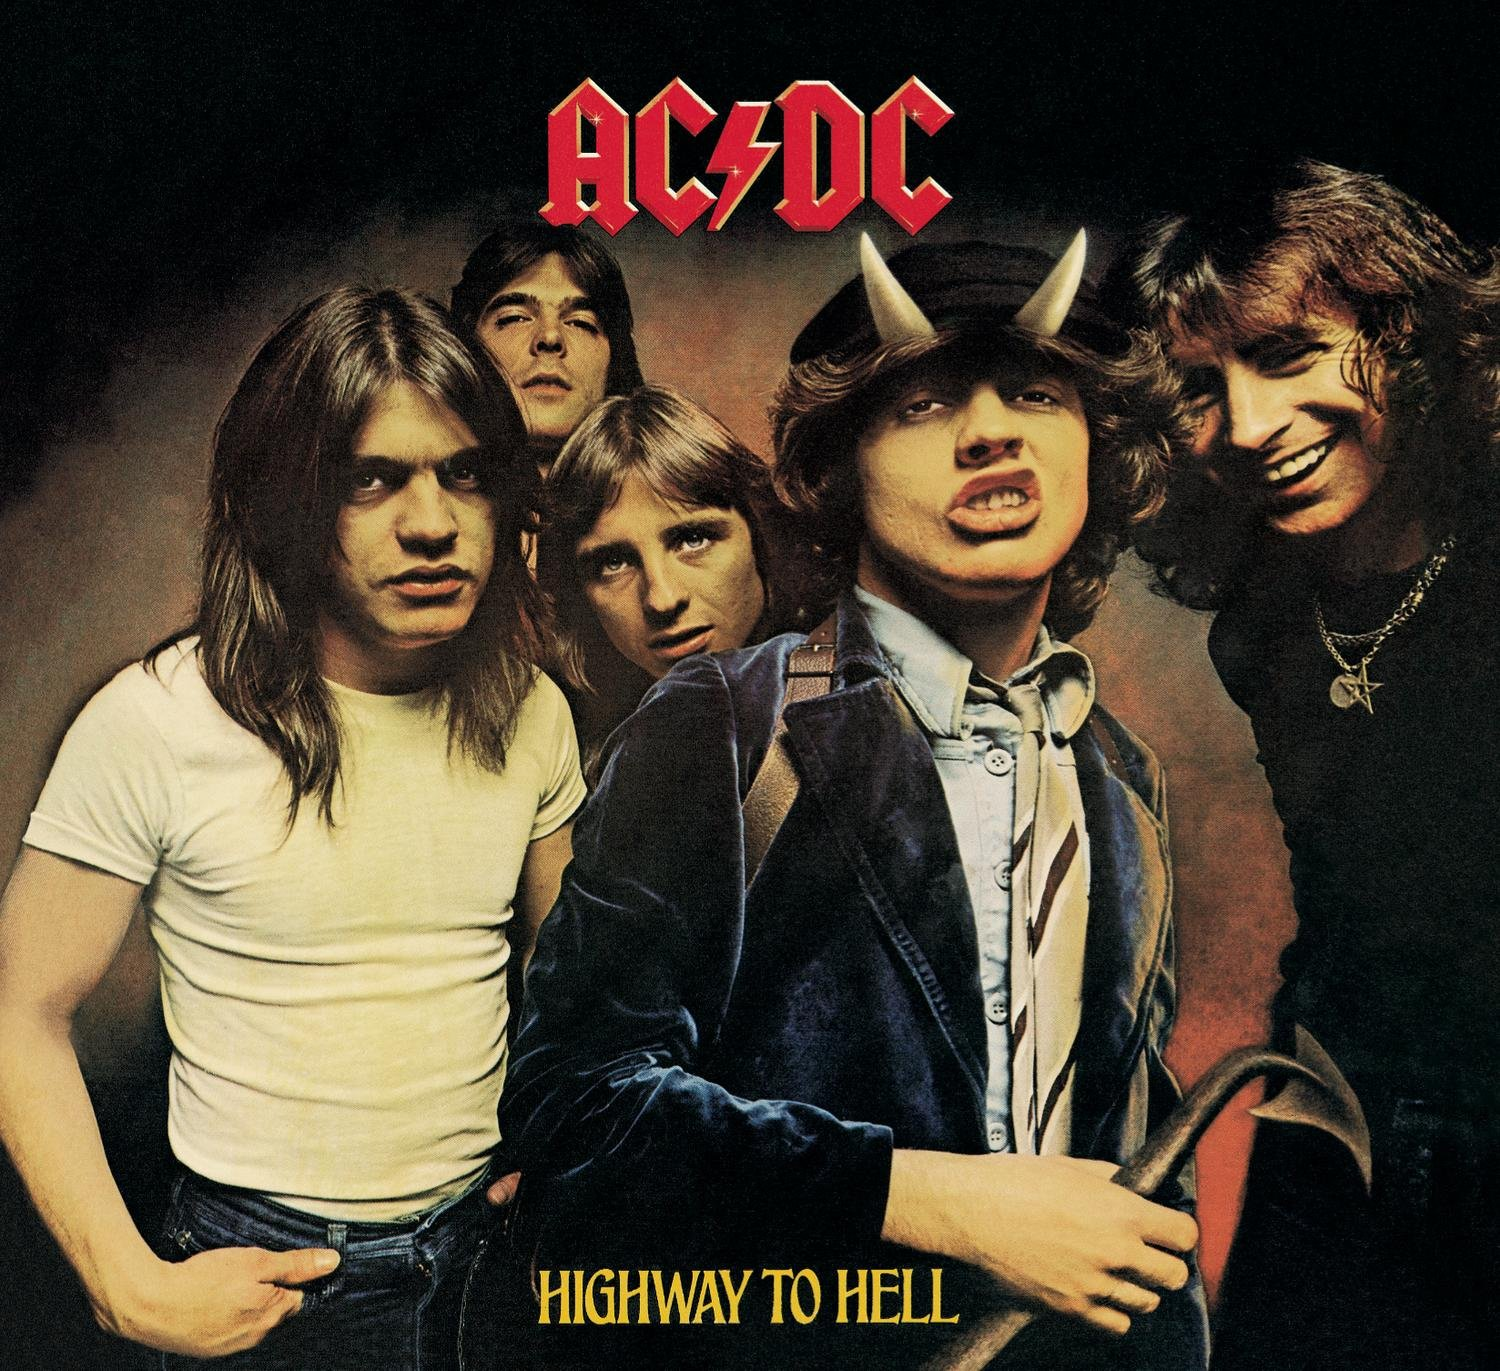 【全曲レビュー】AC/DC – Highway To Hell